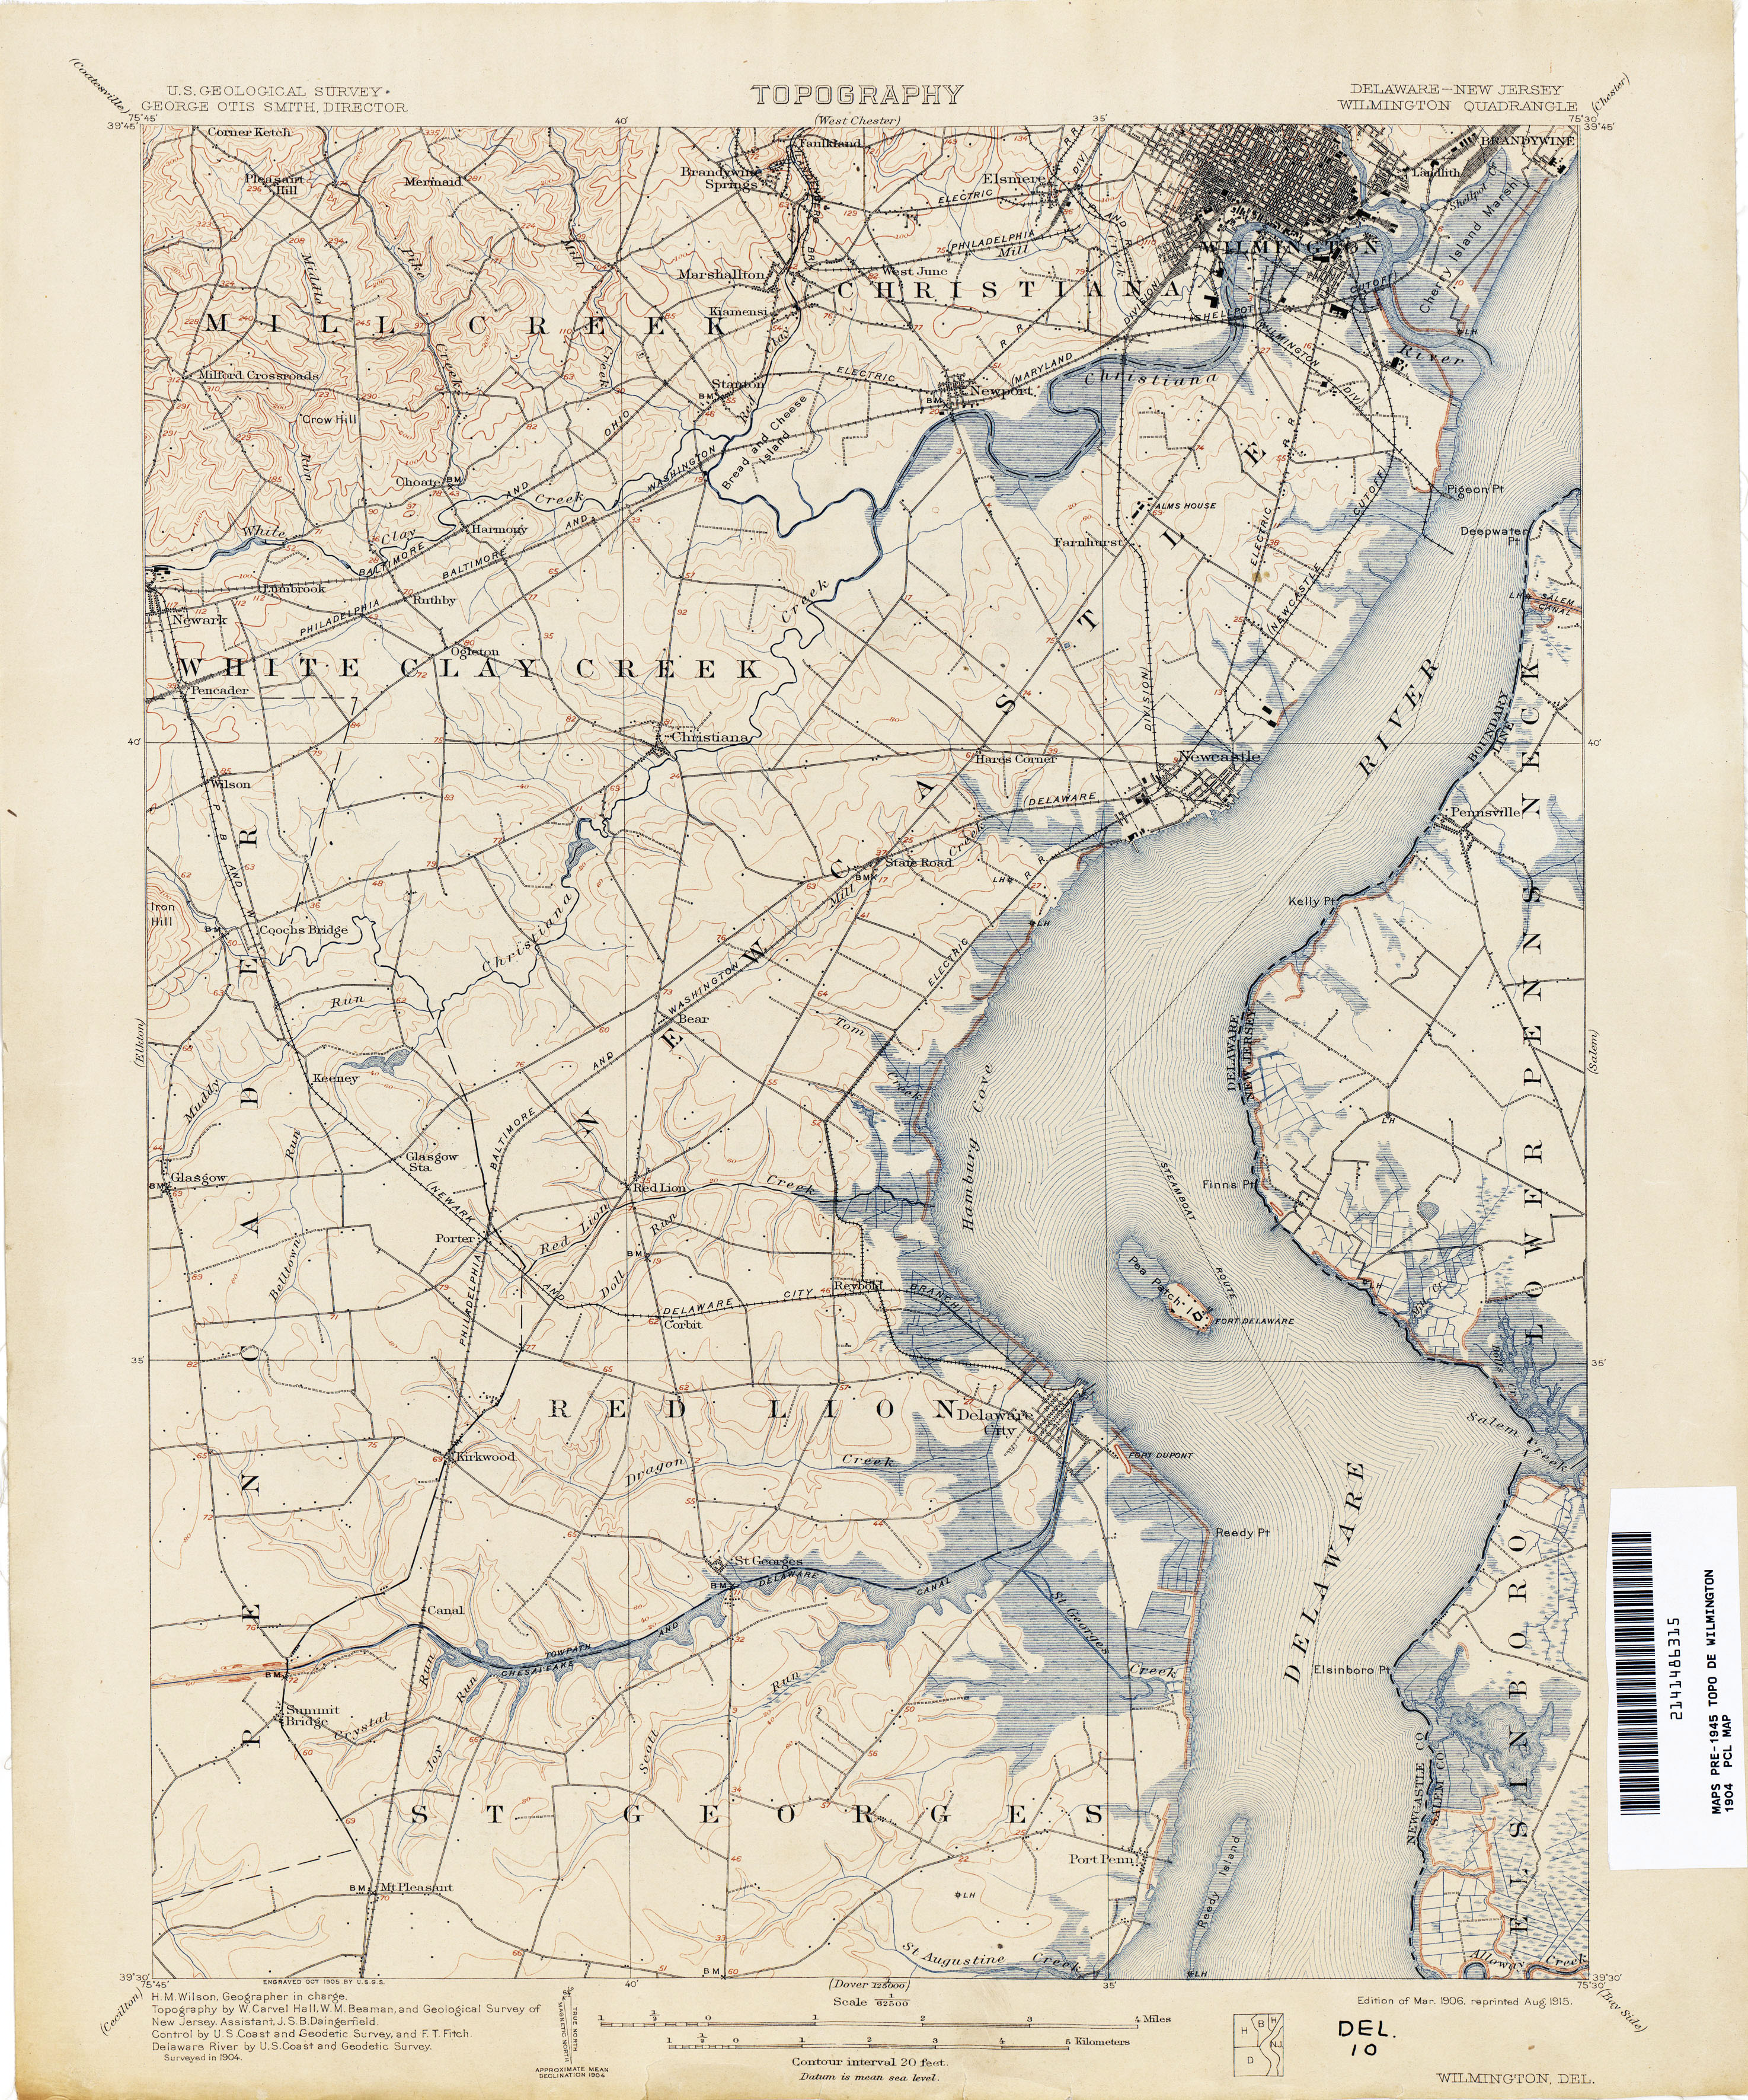 Delaware Historical Topographic Maps PerryCastañeda Map - Map of delaware